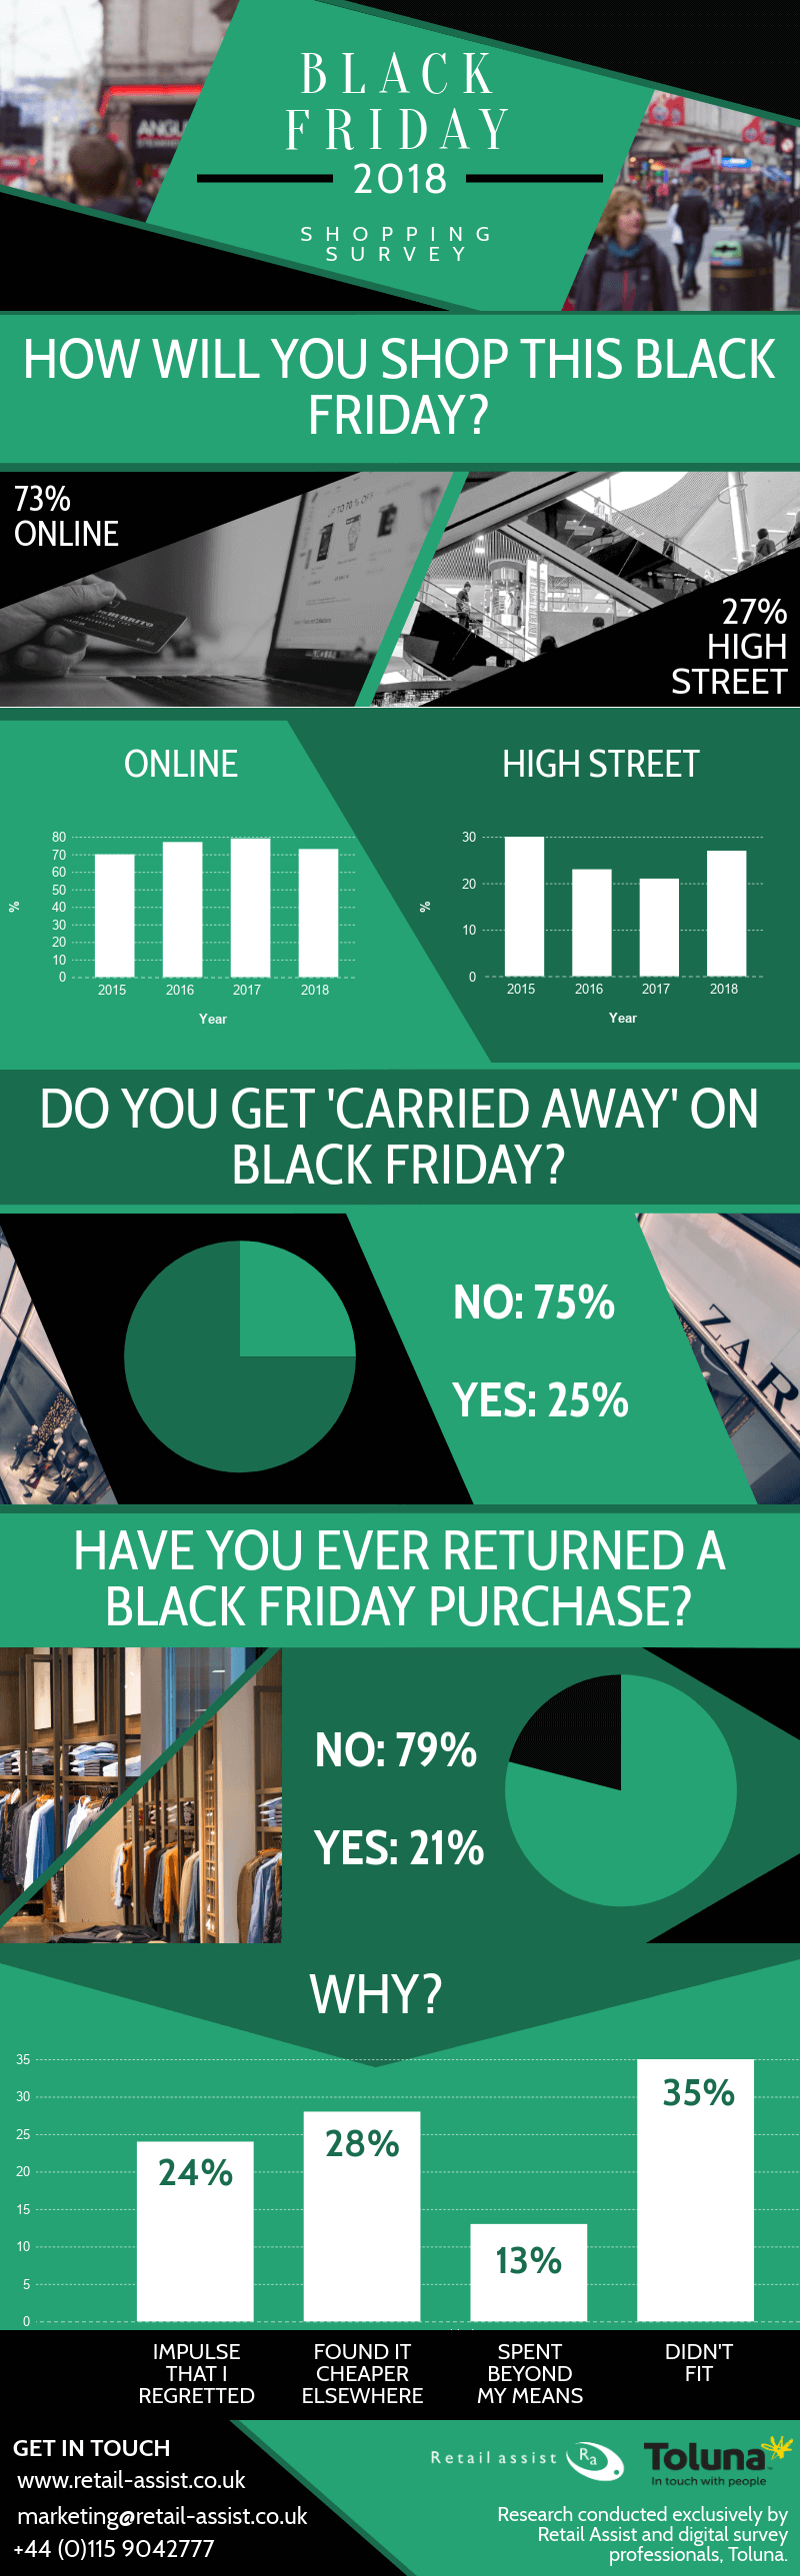 Black Friday 2018 Survey